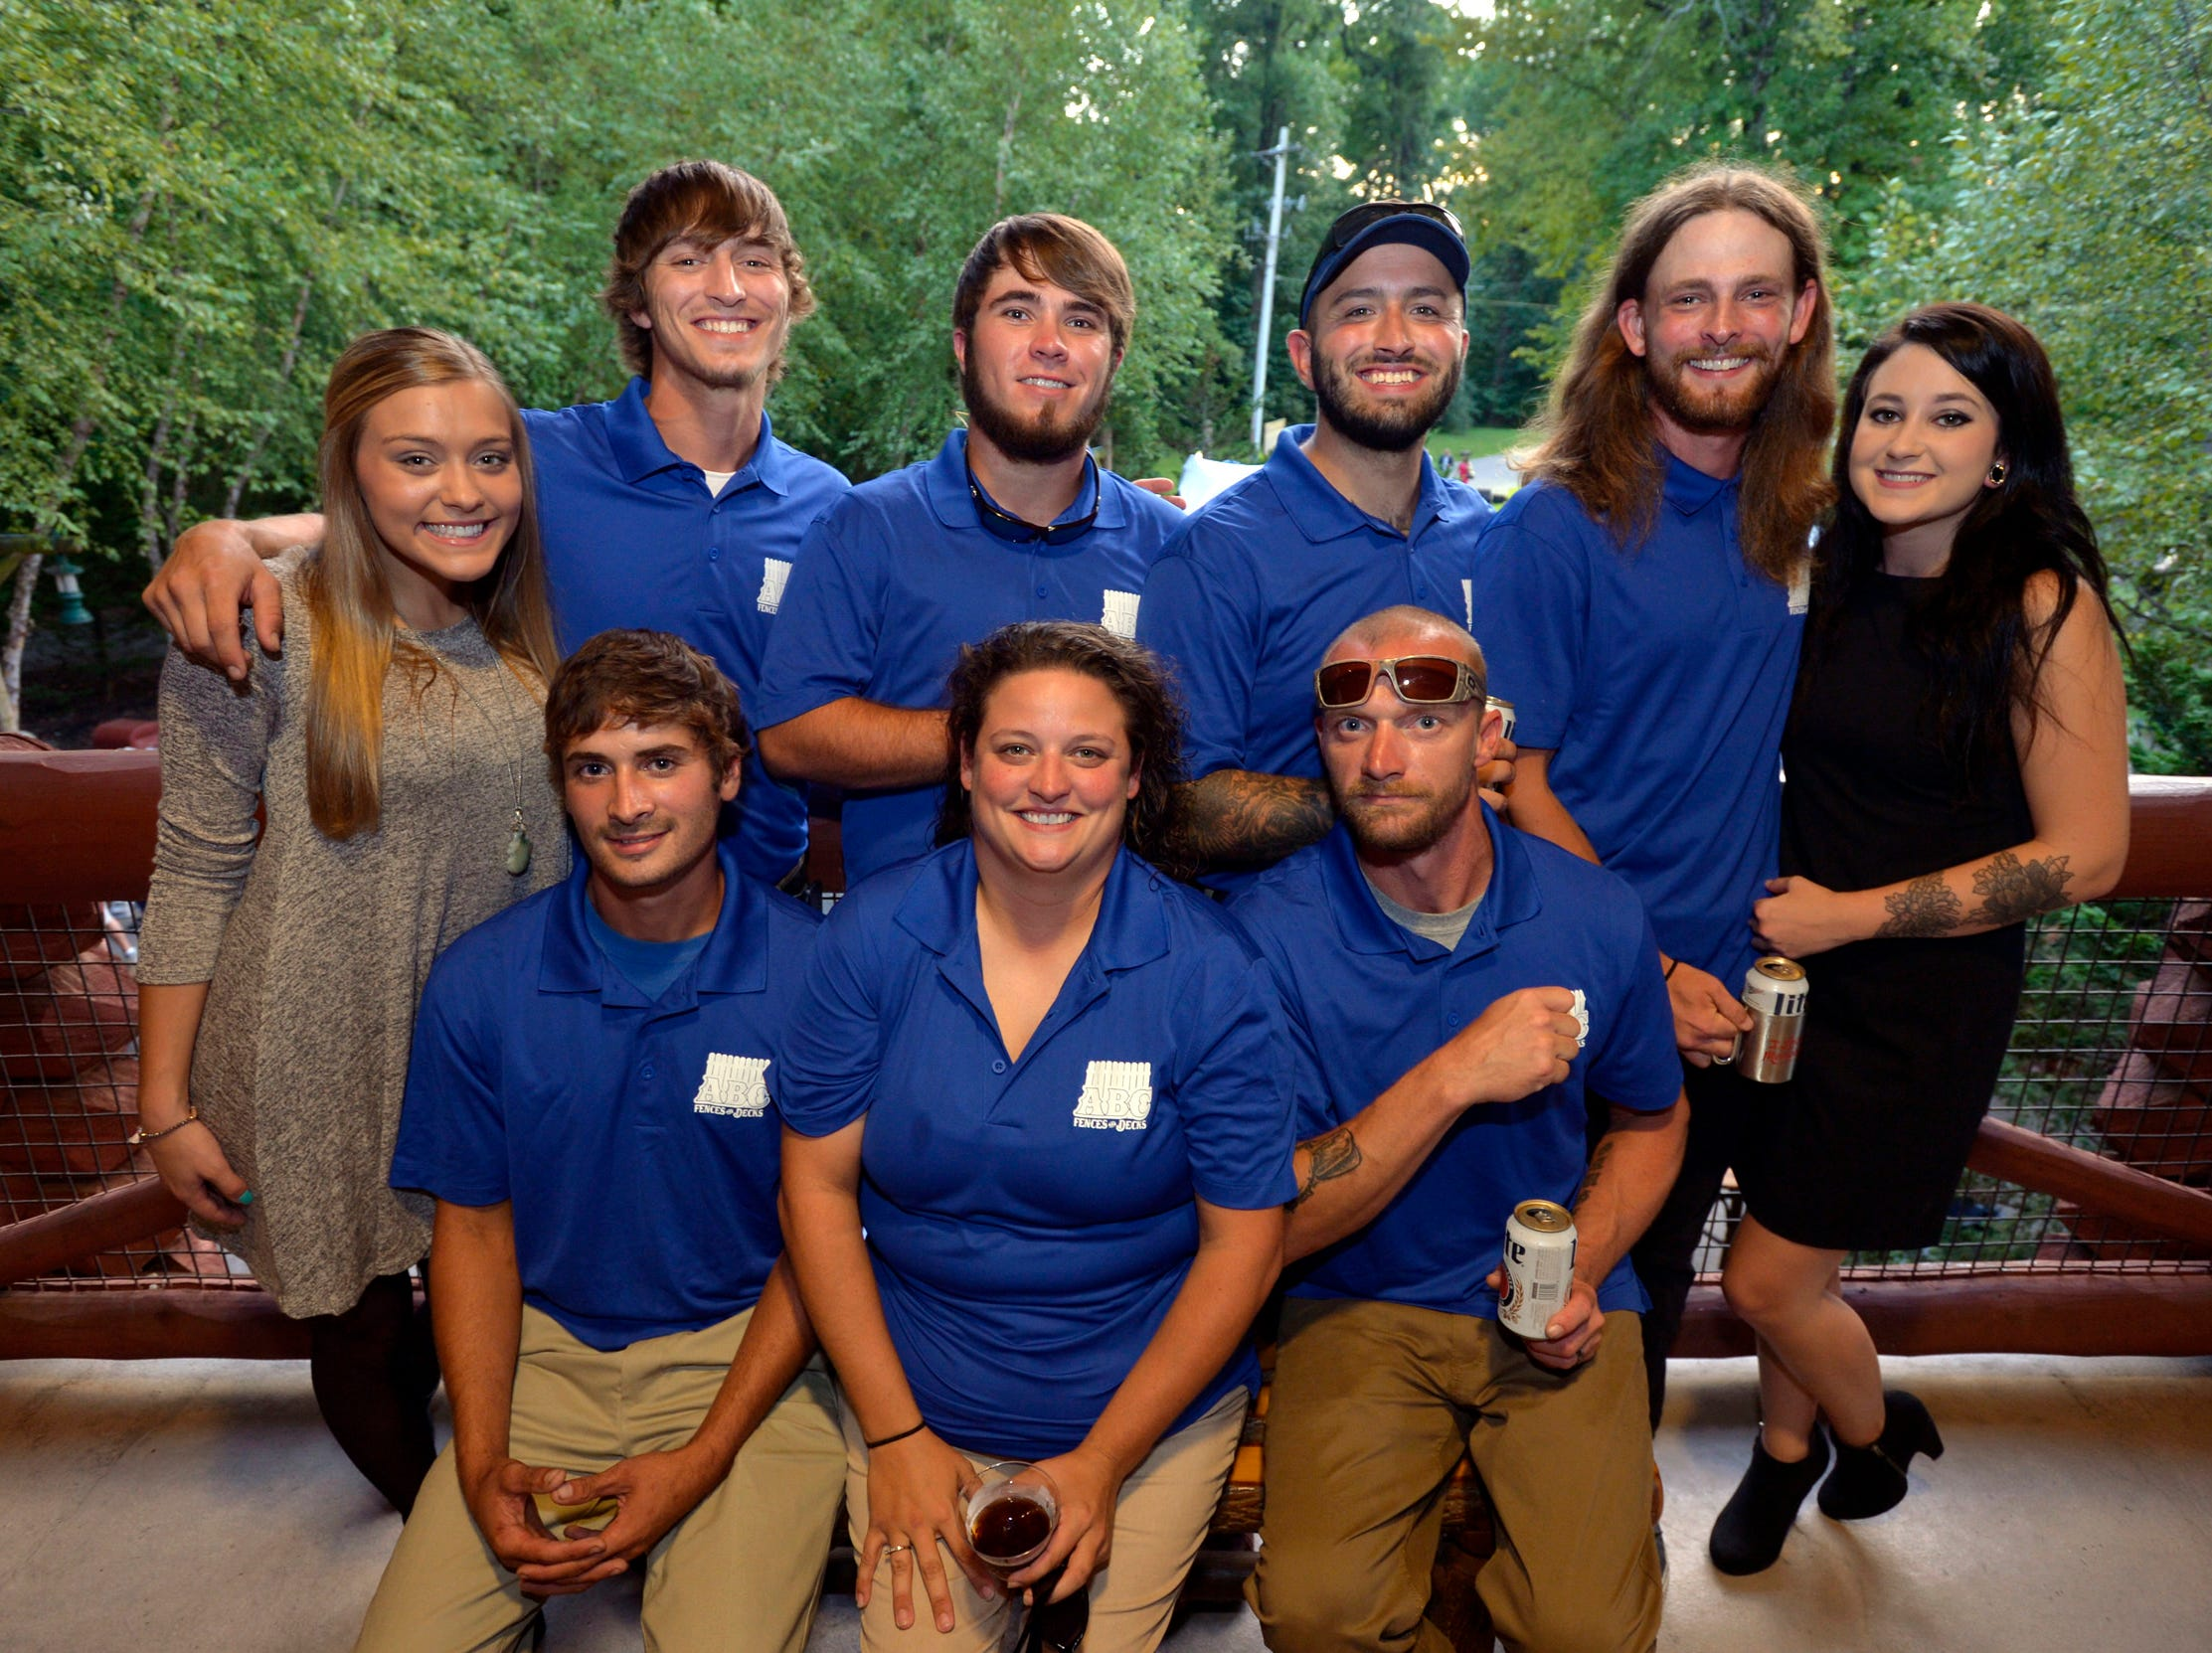 September 13, 2018 - Representatives from ABC Fences and Decks pose for a photo during the 2018 Memphis Most awards party at Teton Trek in the Memphis Zoo. (Brandon Dill for The Commercial Appeal)